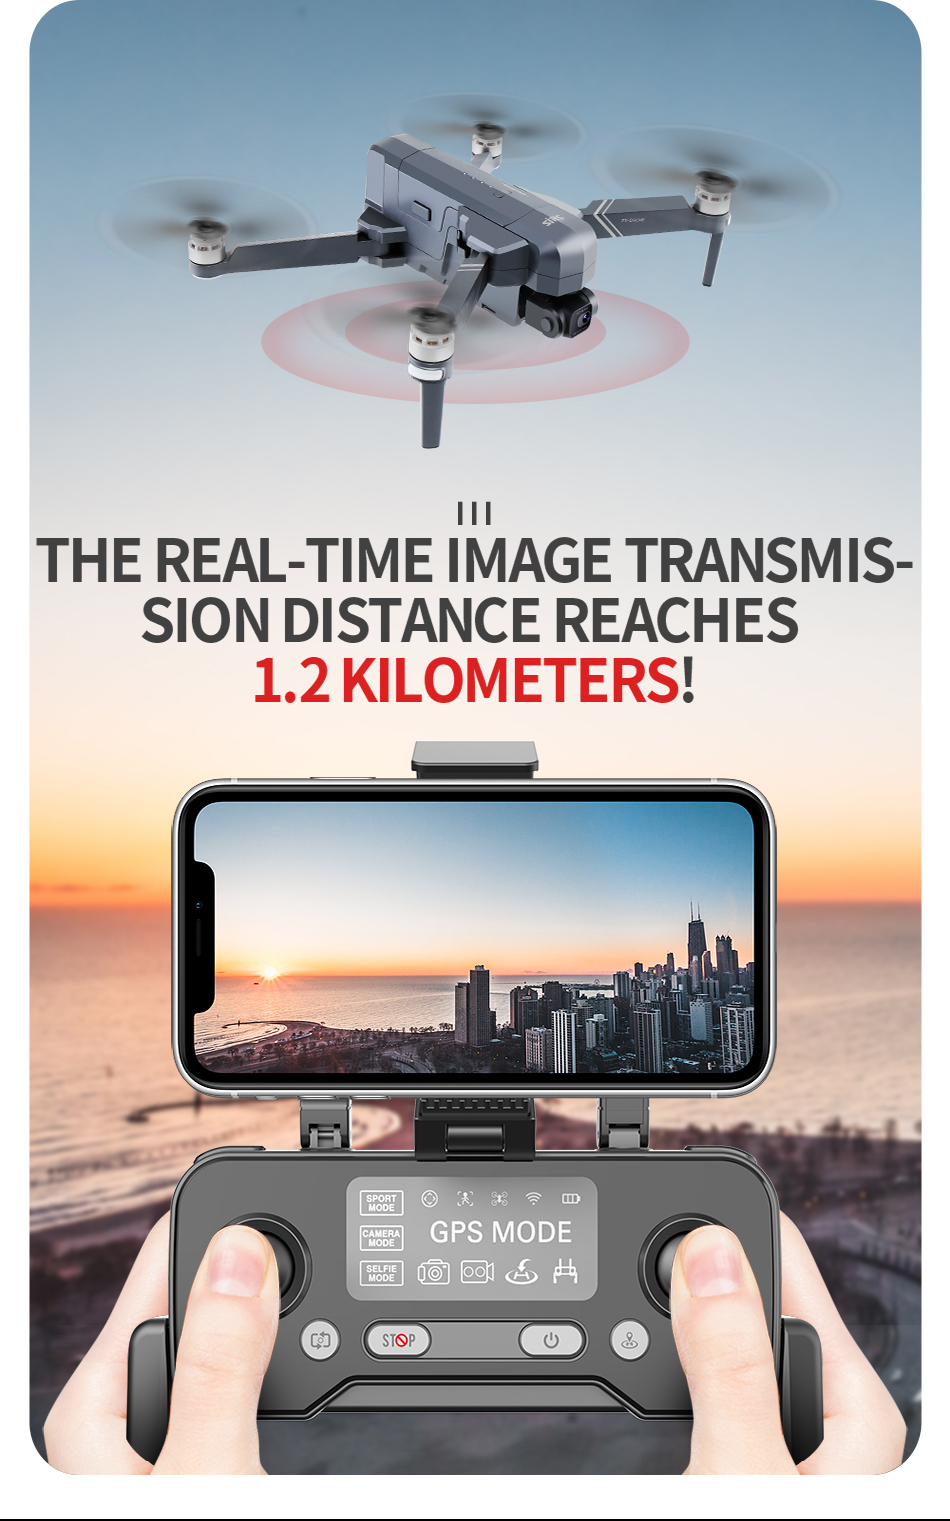 H13917a6c288448668d987761b078a6a3Q - SJRC F11 Pro 4K F11s Pro 2.5K Camera Drone GPS 5G FPV HD 2 Axis Stabilized Gimbal EIS Professional Brushless Quadcopter RC Dron